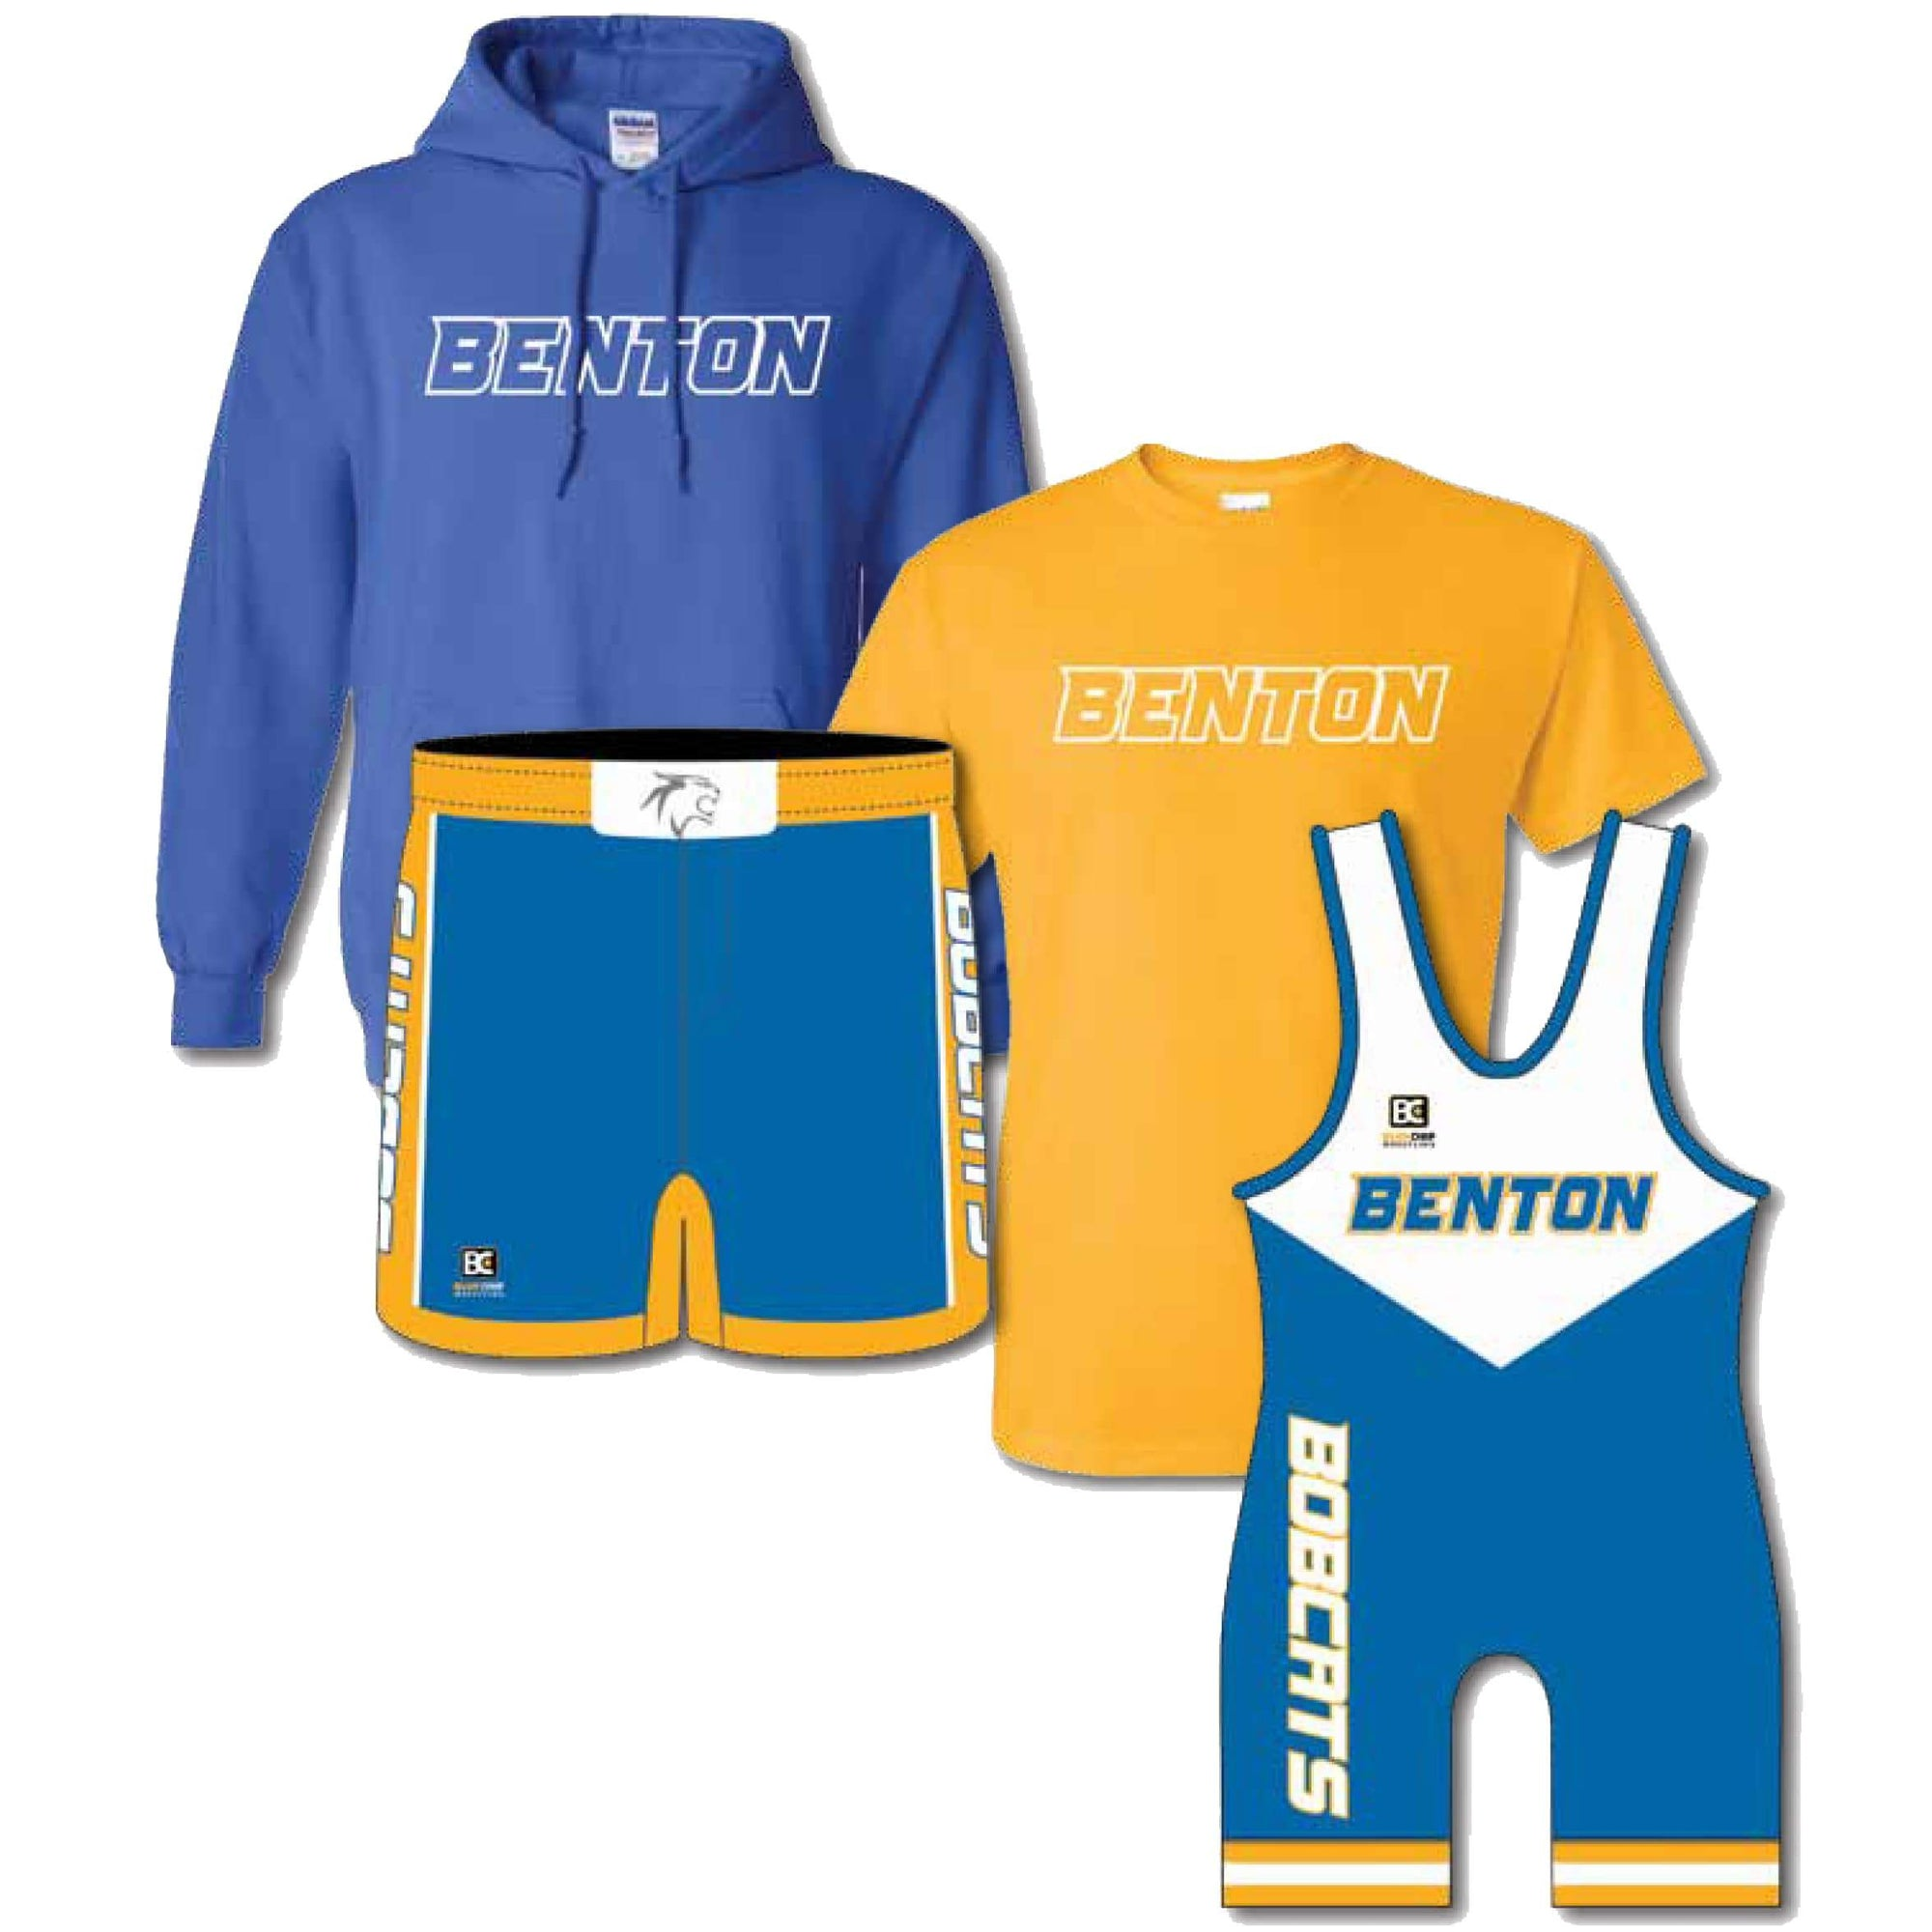 Competition Pack #6 (Tee + Hoodie + Singlet + Wrestling Short)